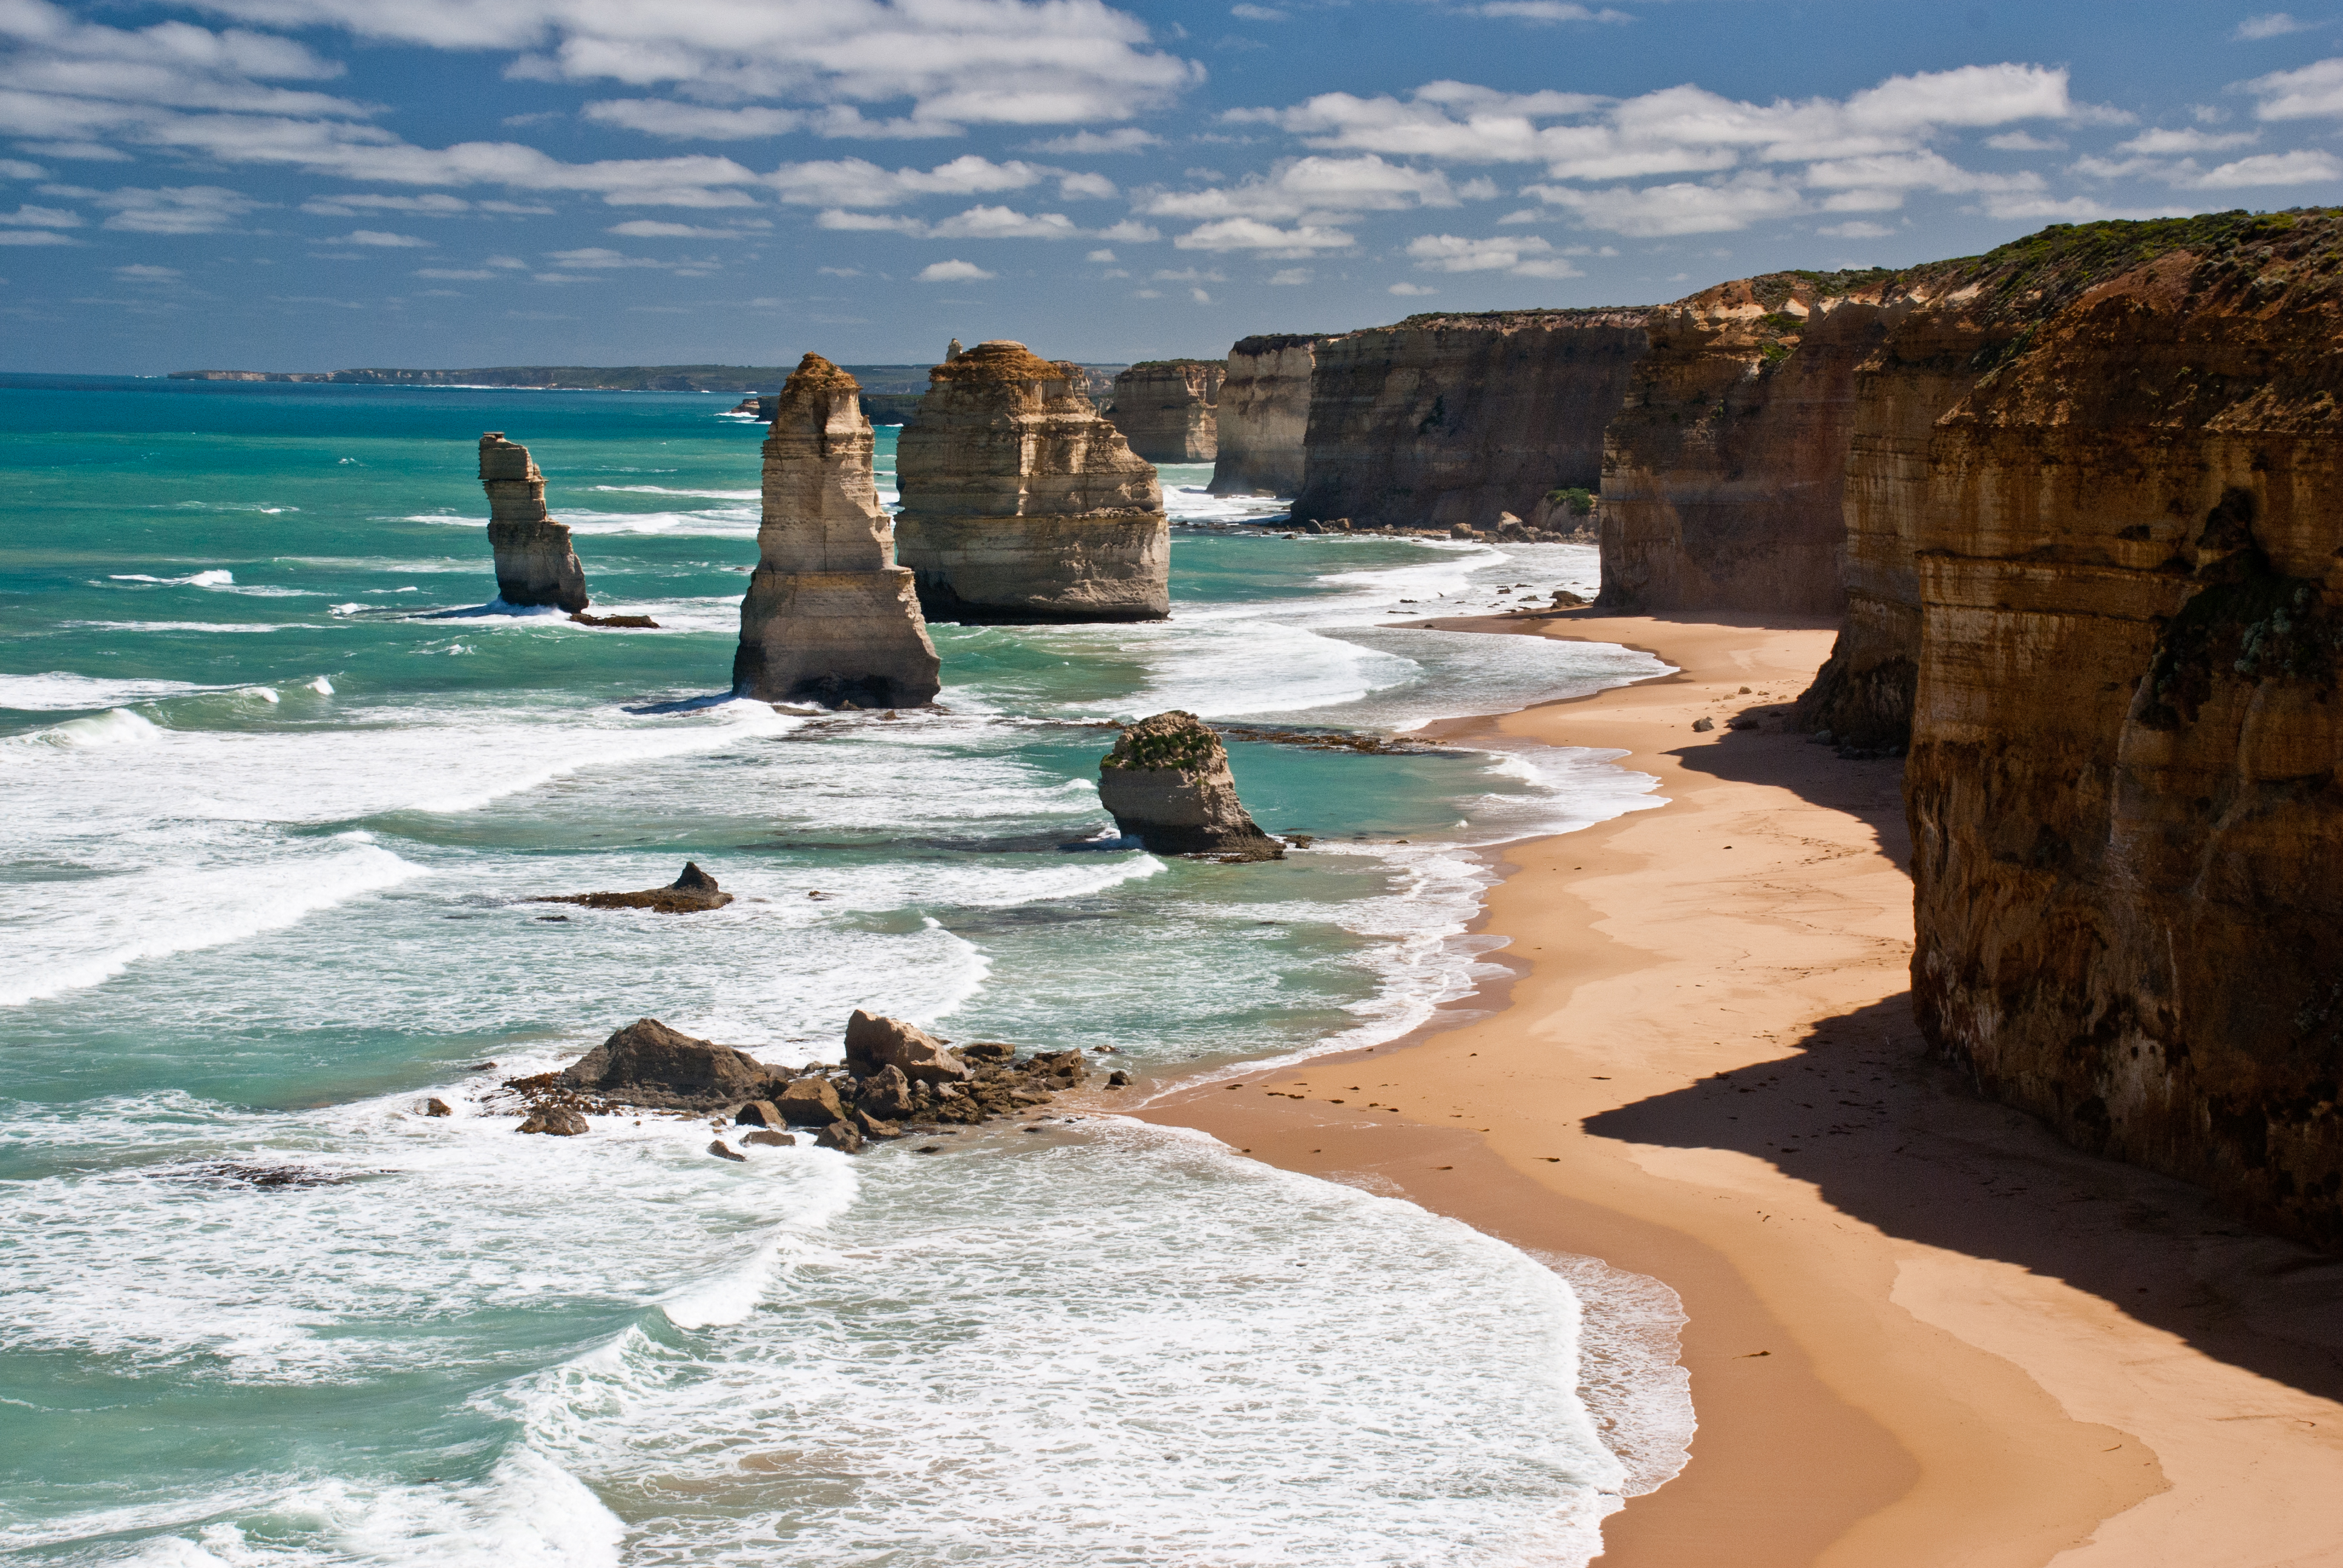 「great ocean road melbourne」の画像検索結果